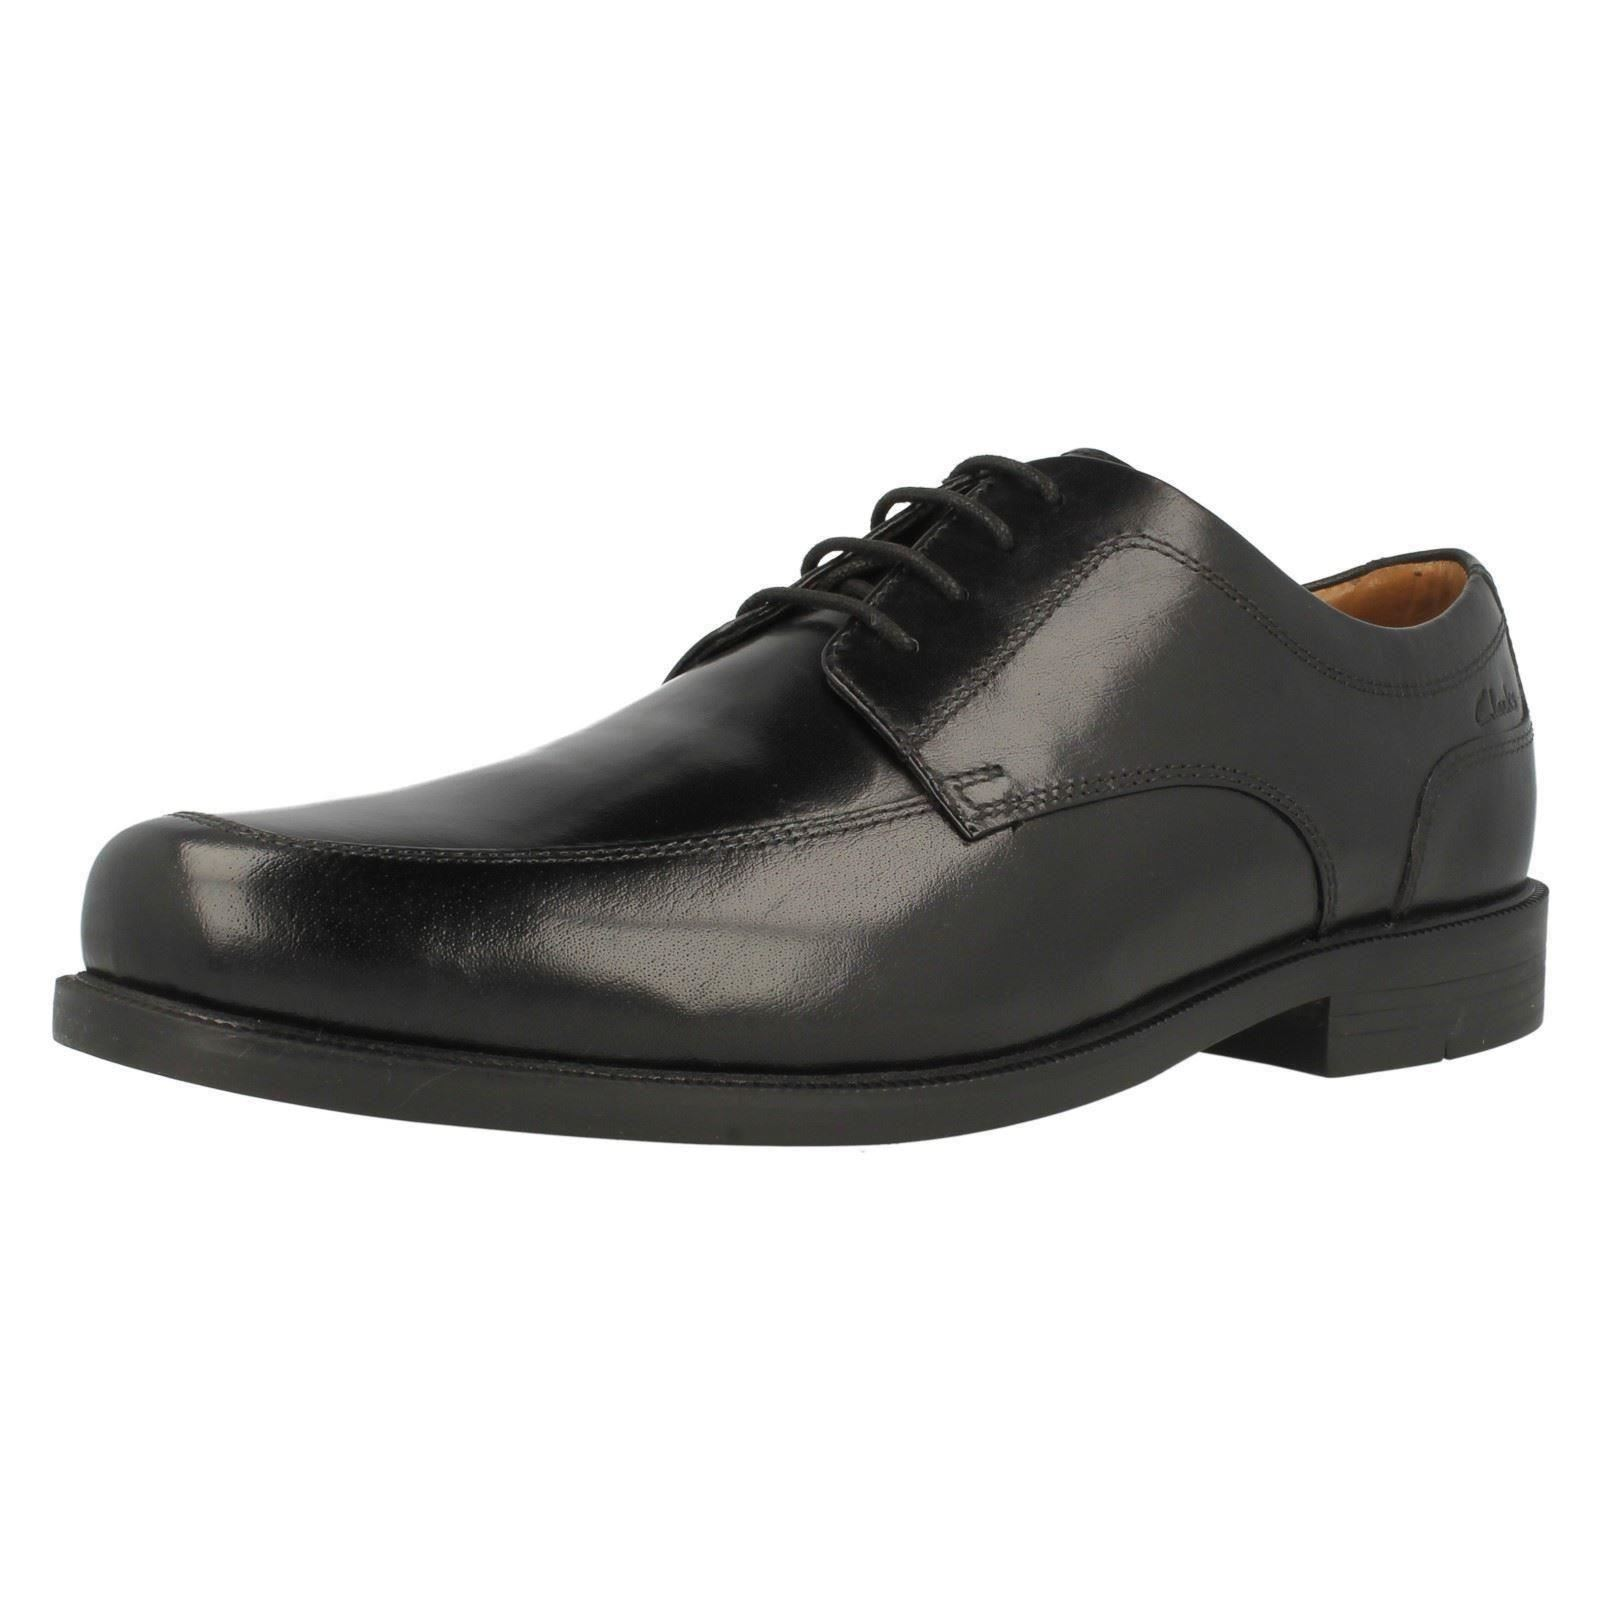 Mens Clarks Formal shoes 'Beeston Apron'